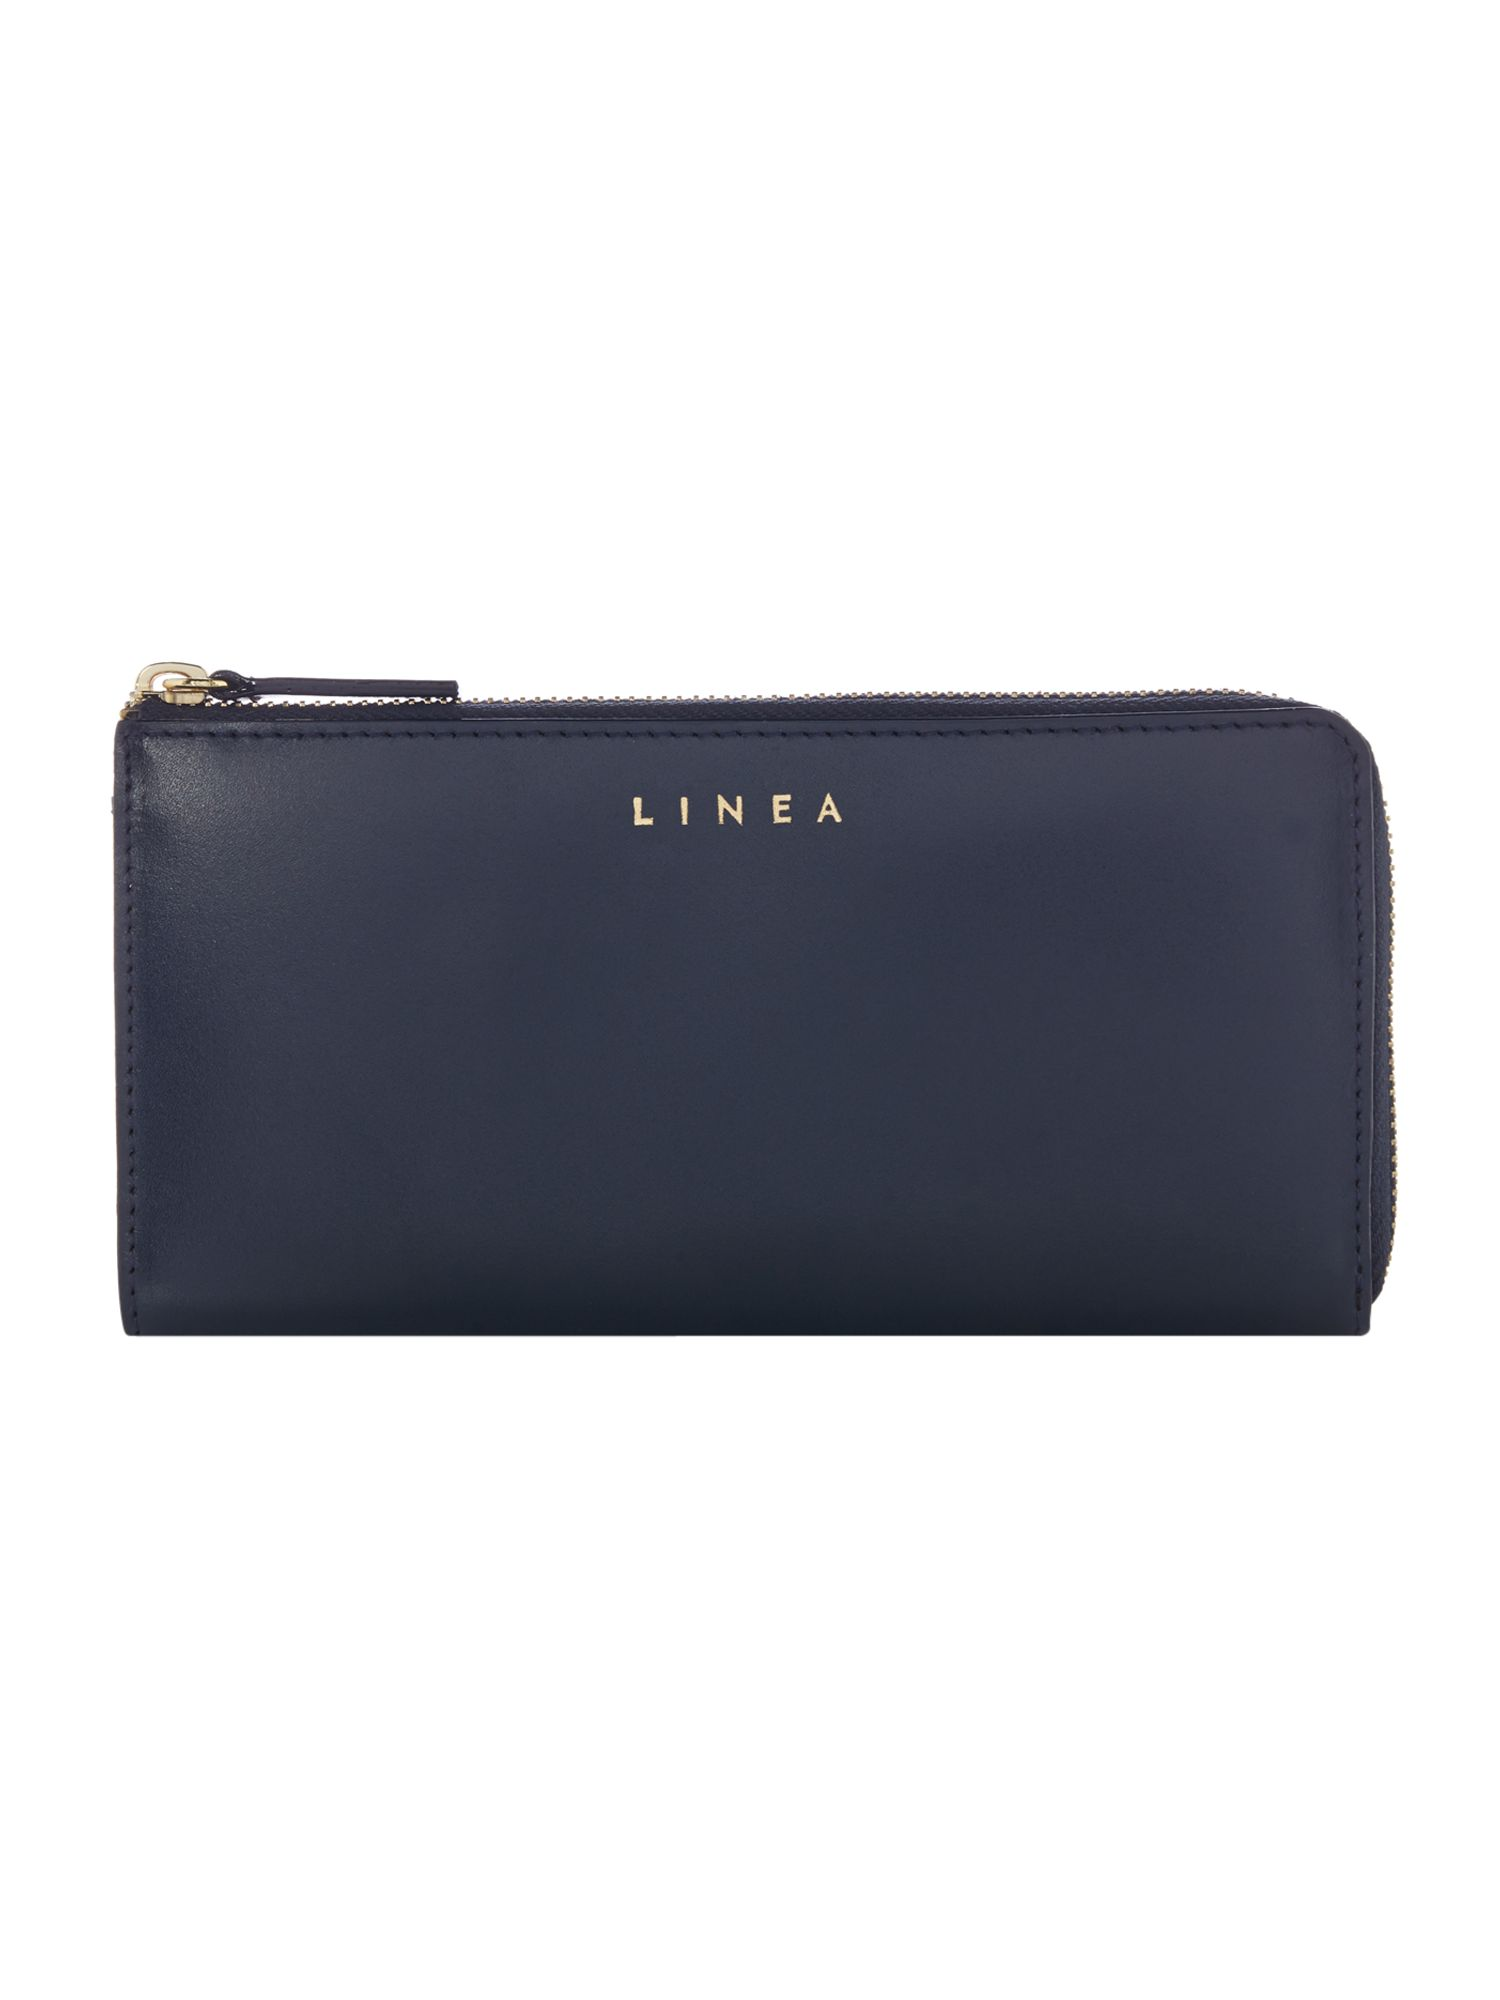 Linea Bennie Leather Zip Around Wallet, Blue